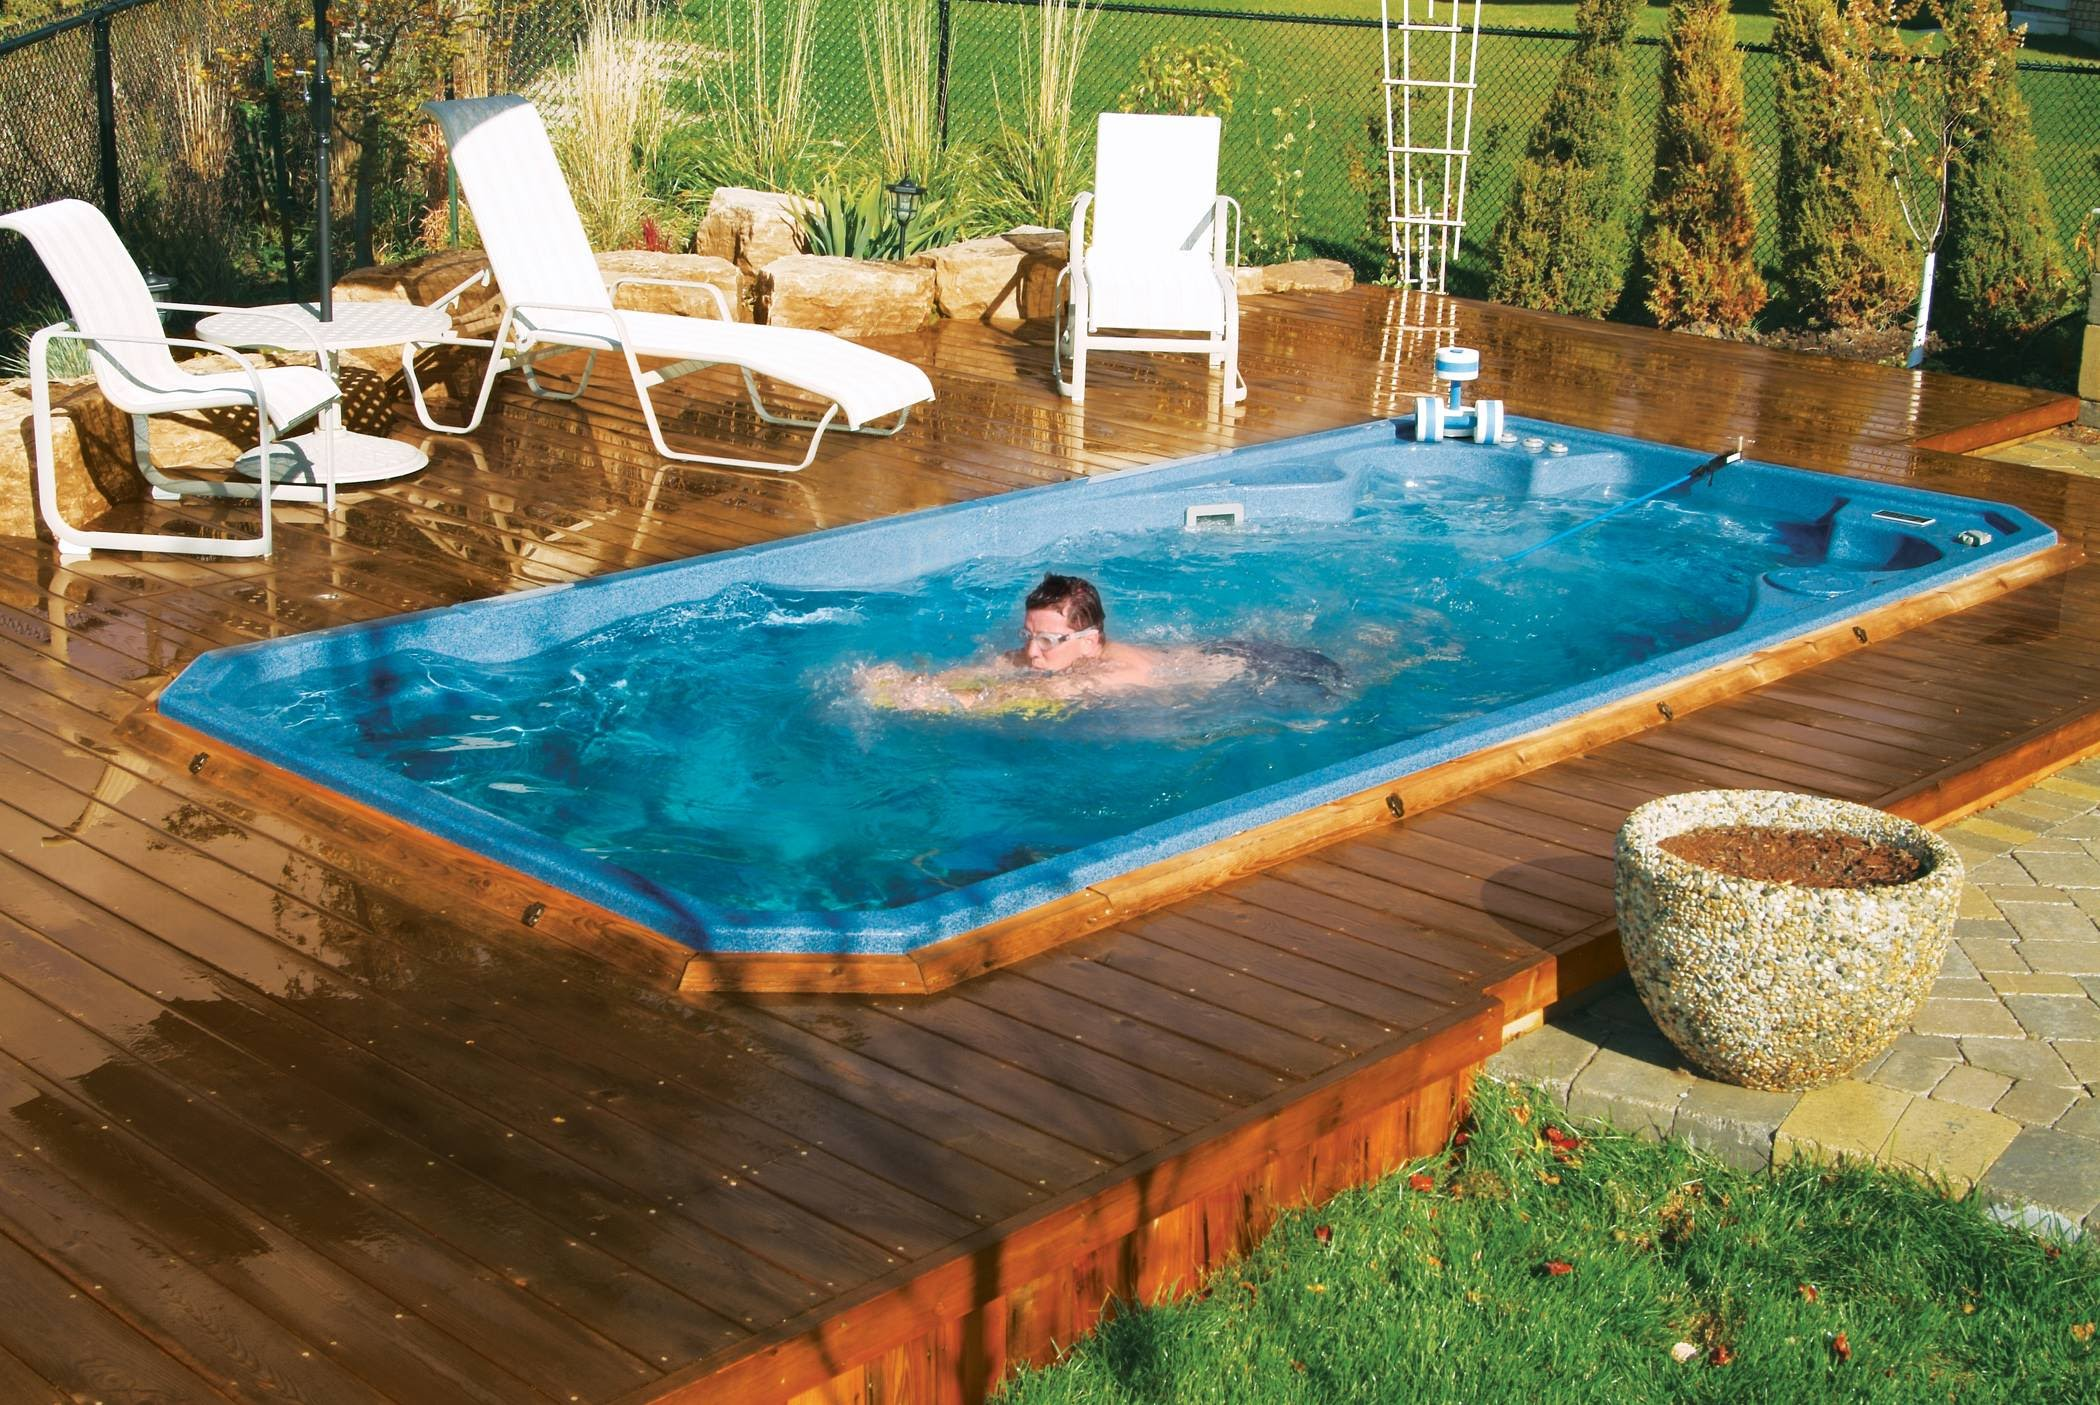 Jacuzzi Endless Pool Swimspasaquaticexercisers Raleigh Pool And Spa